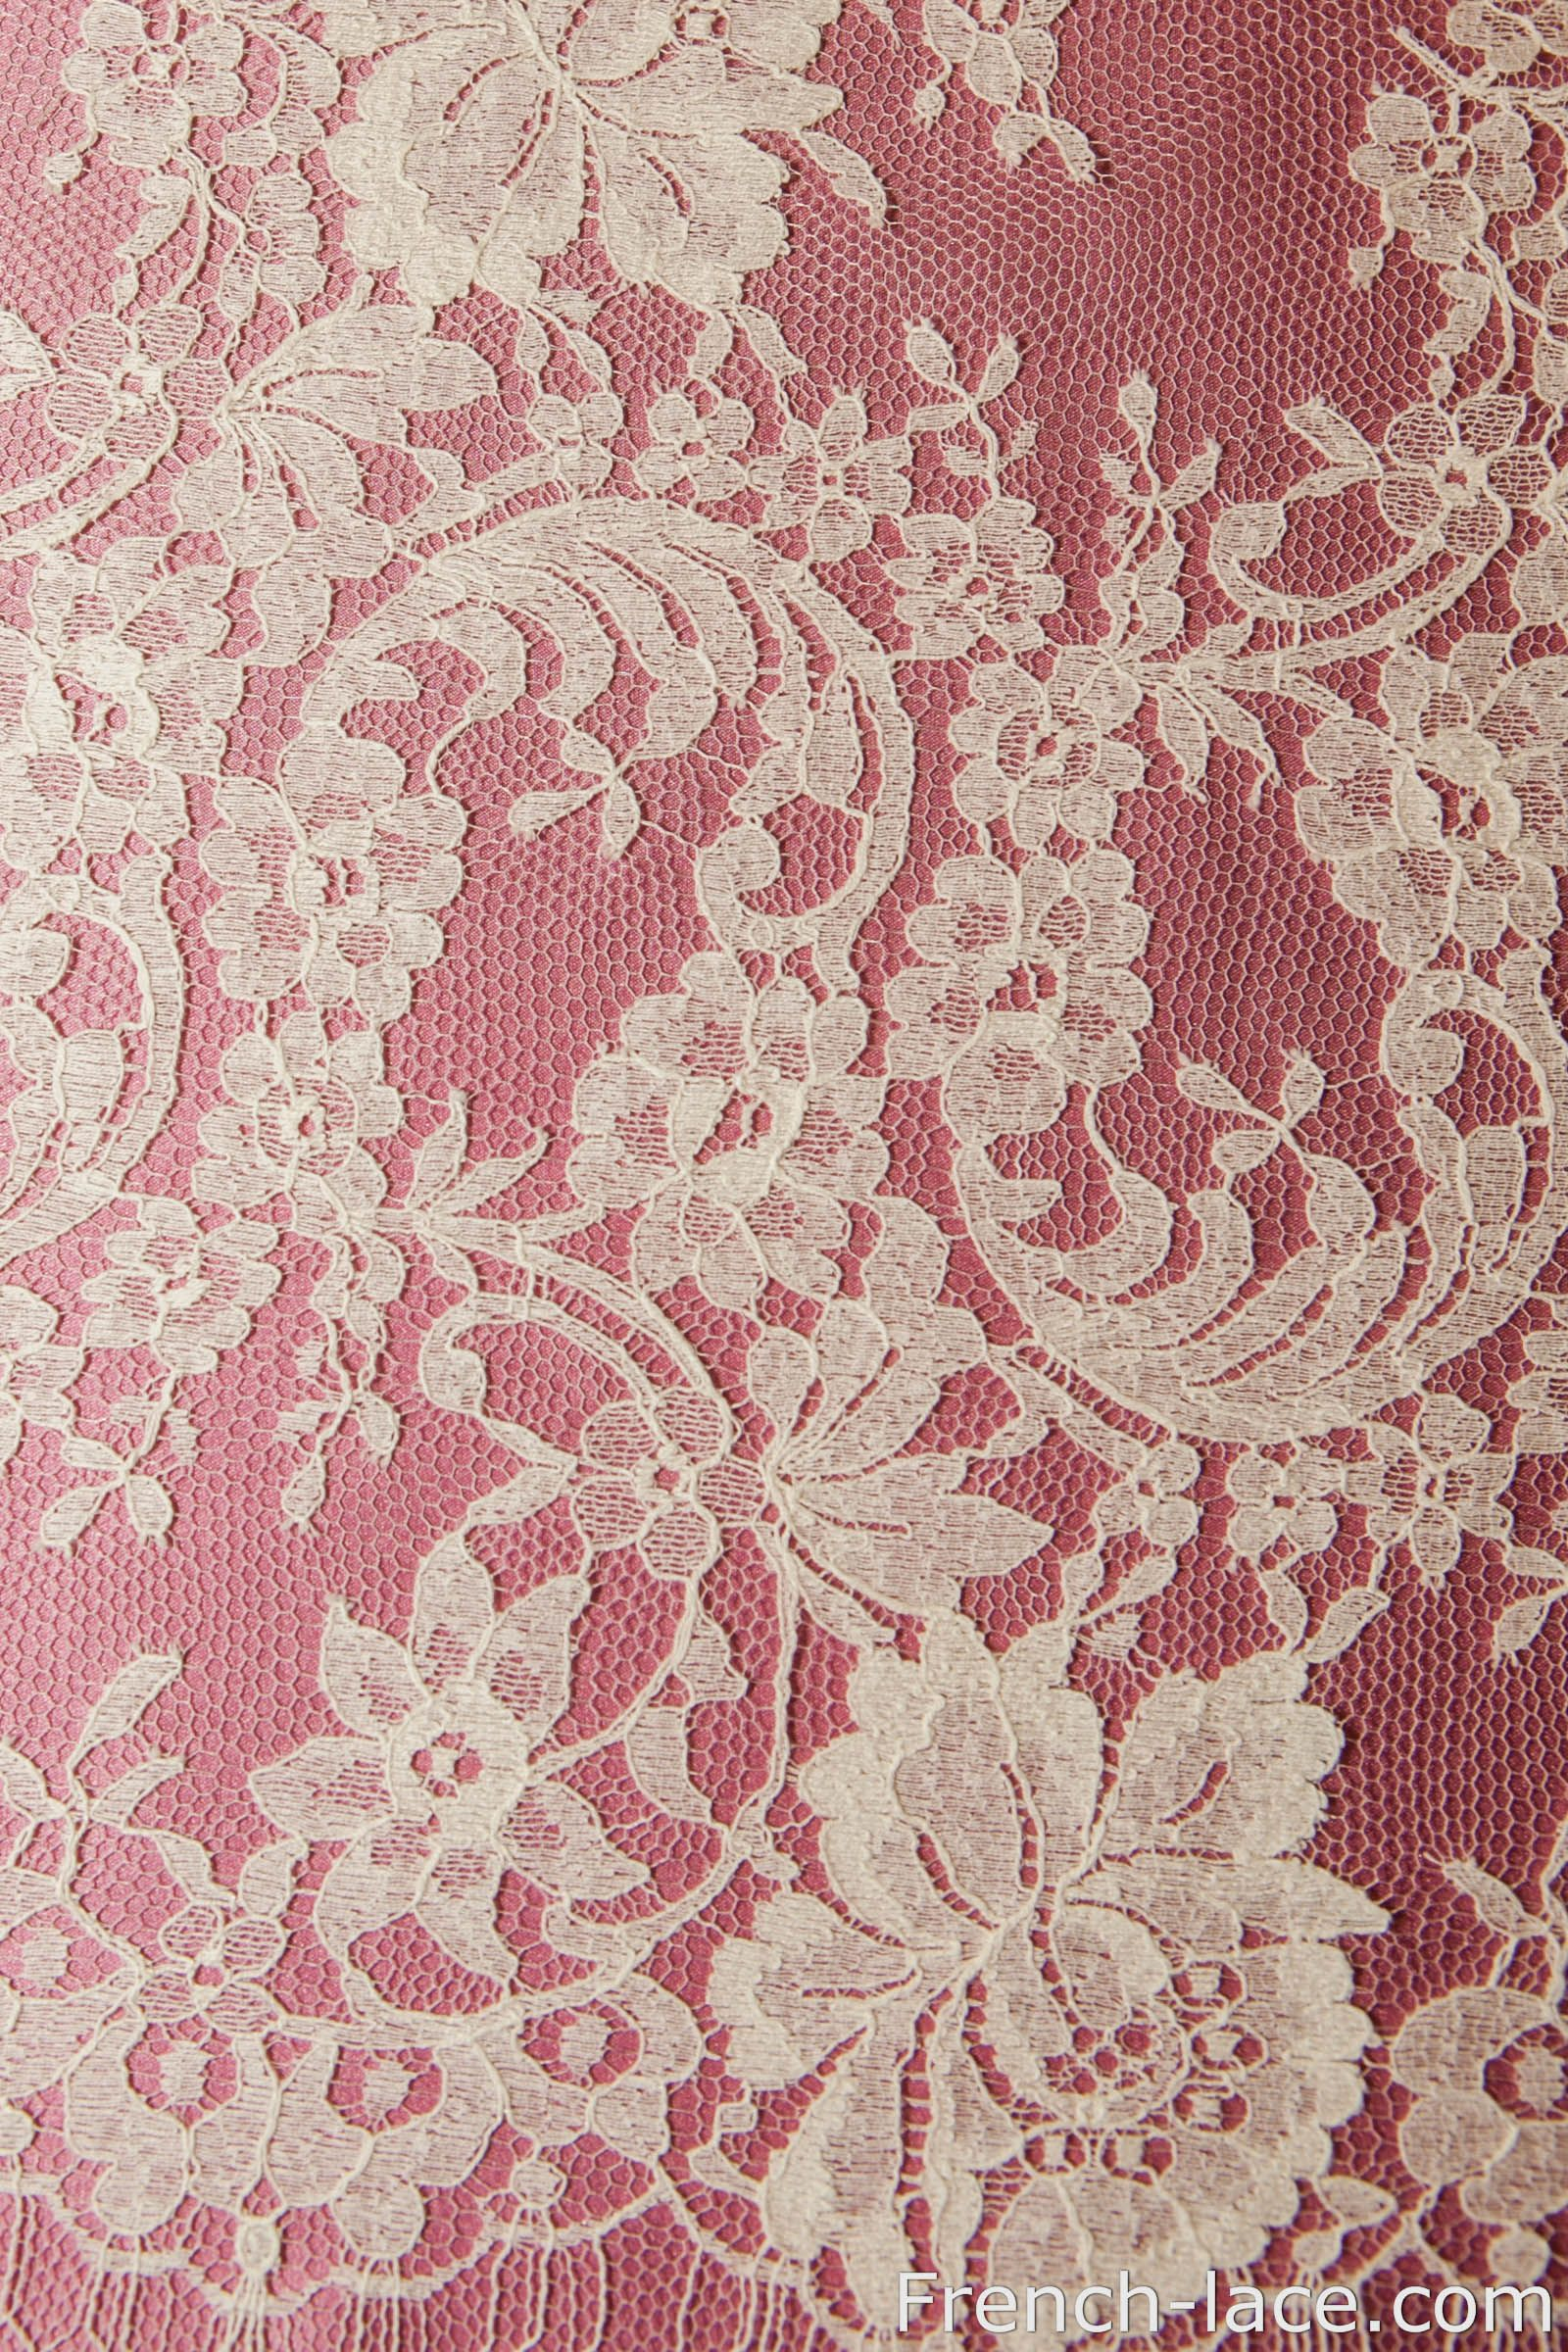 dusty rose Lace iphone wallpaper, Dusty rose color